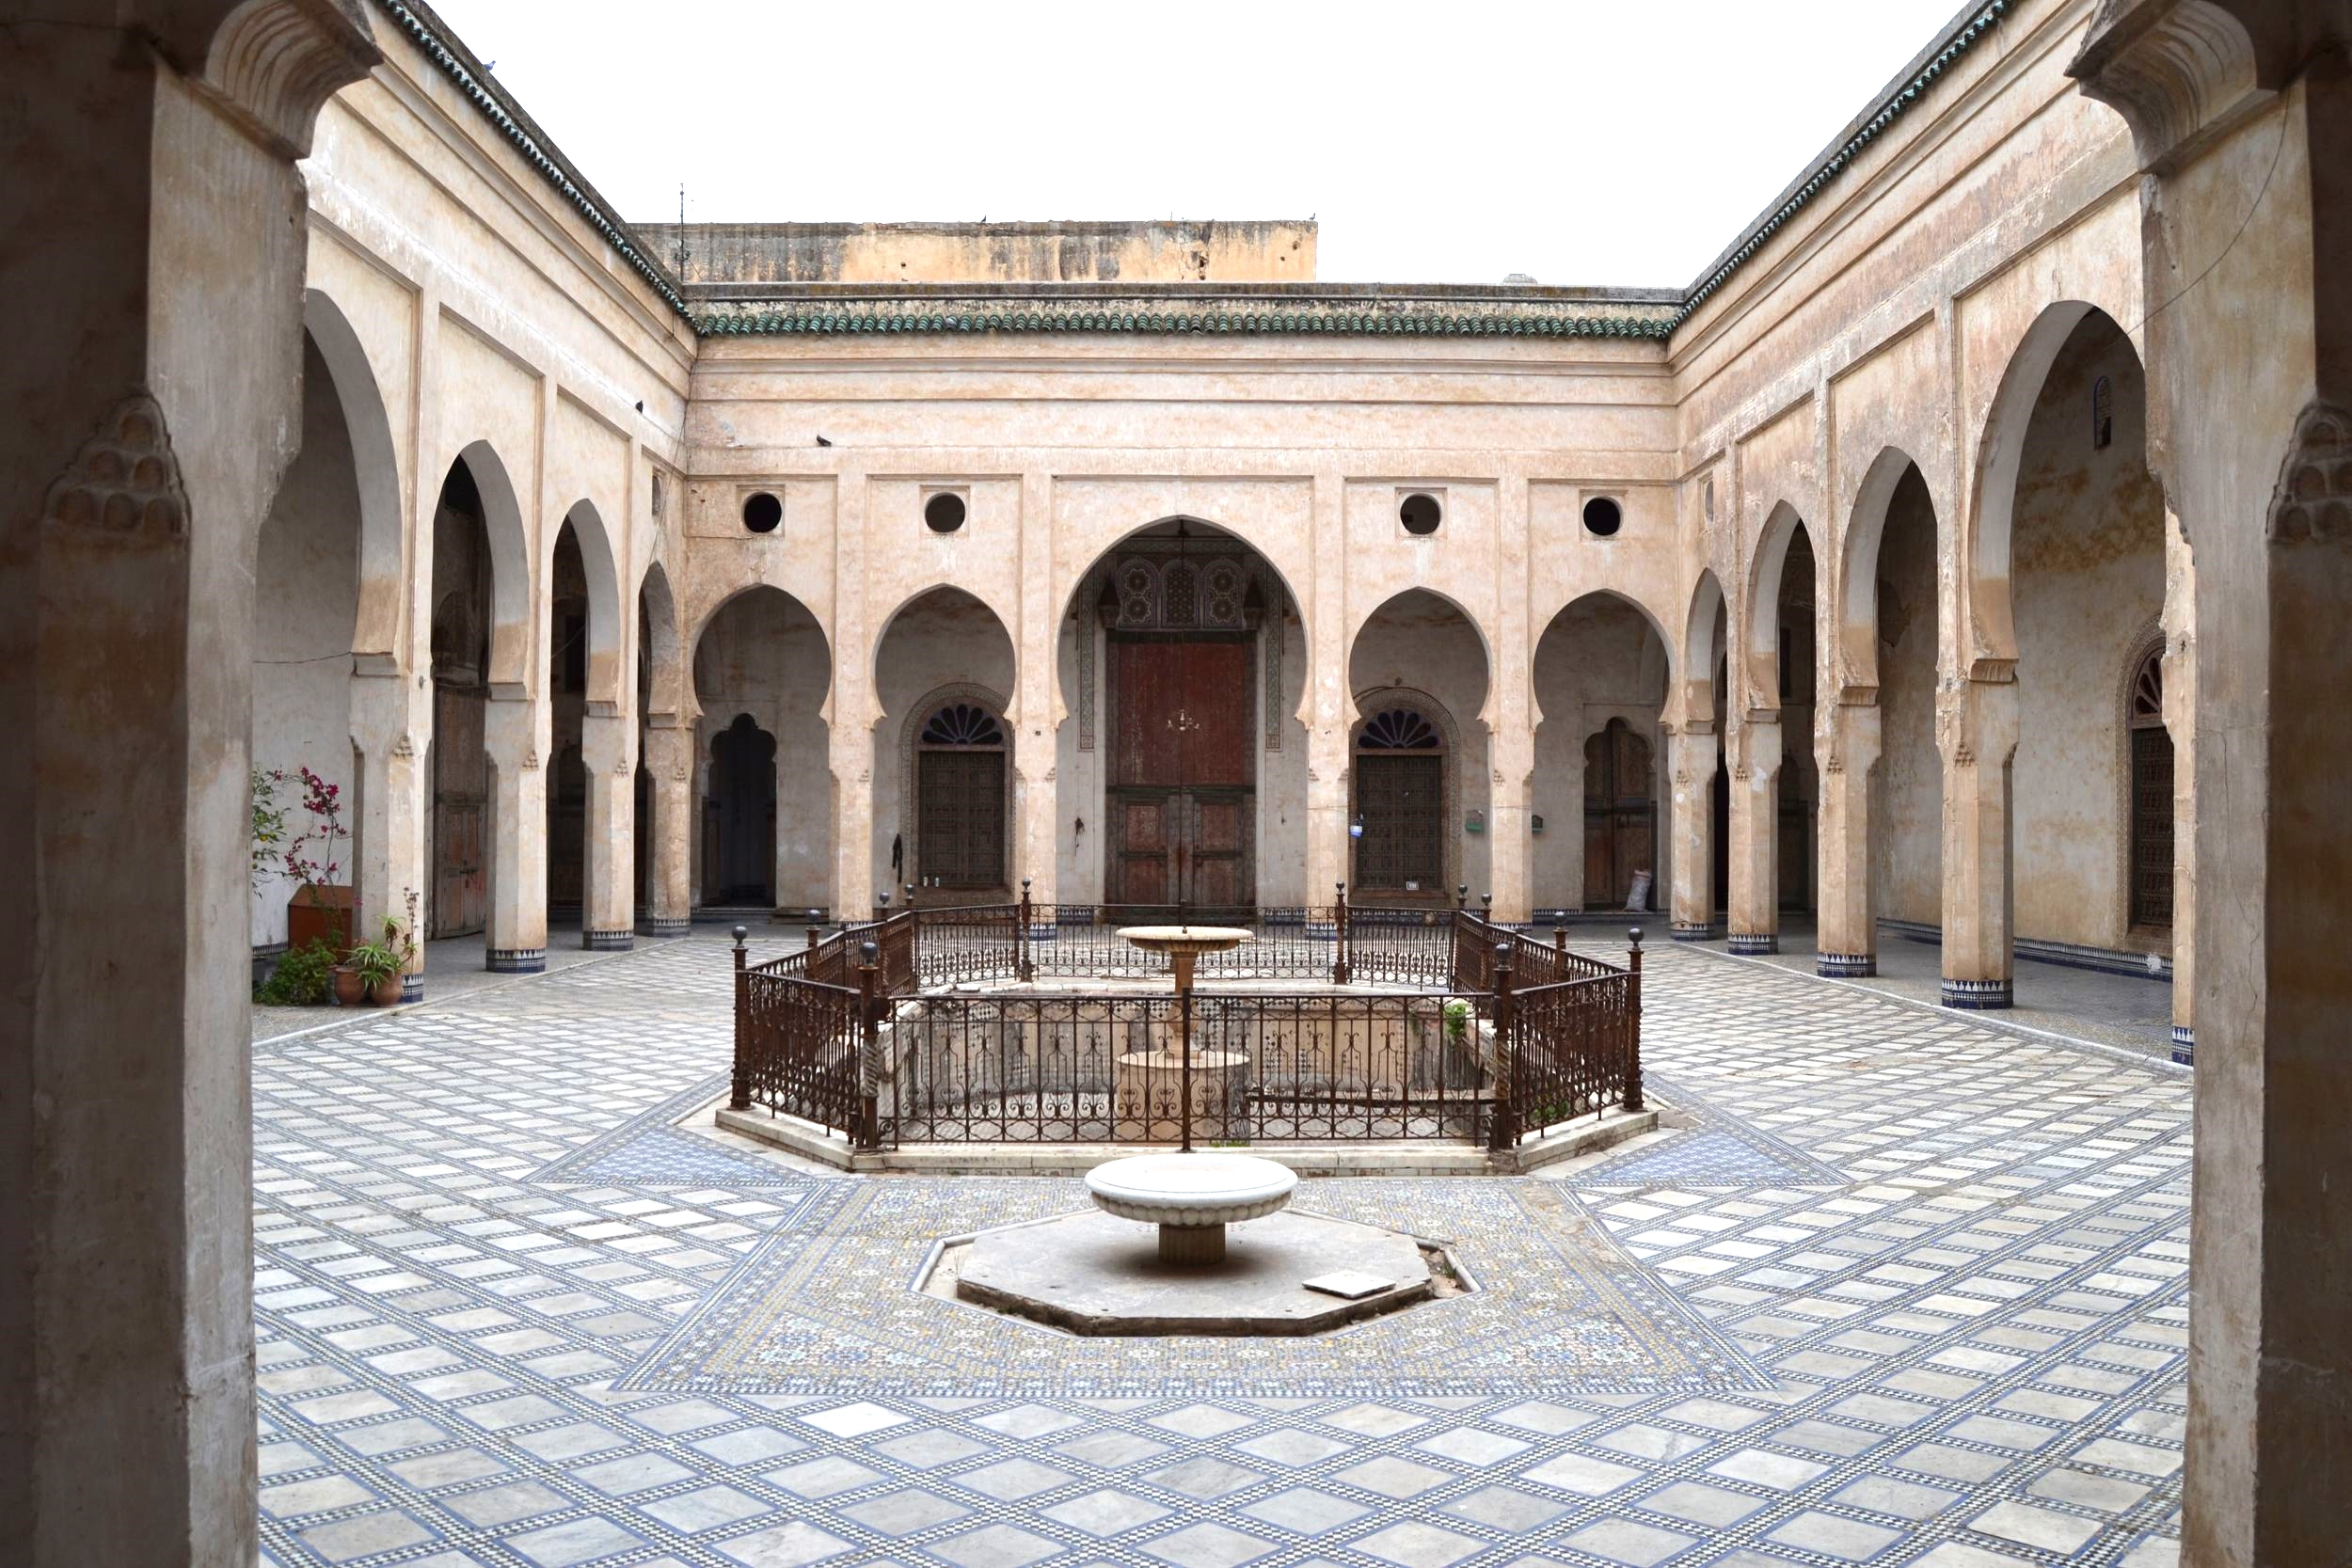 The Glaoui Palace Courtyard